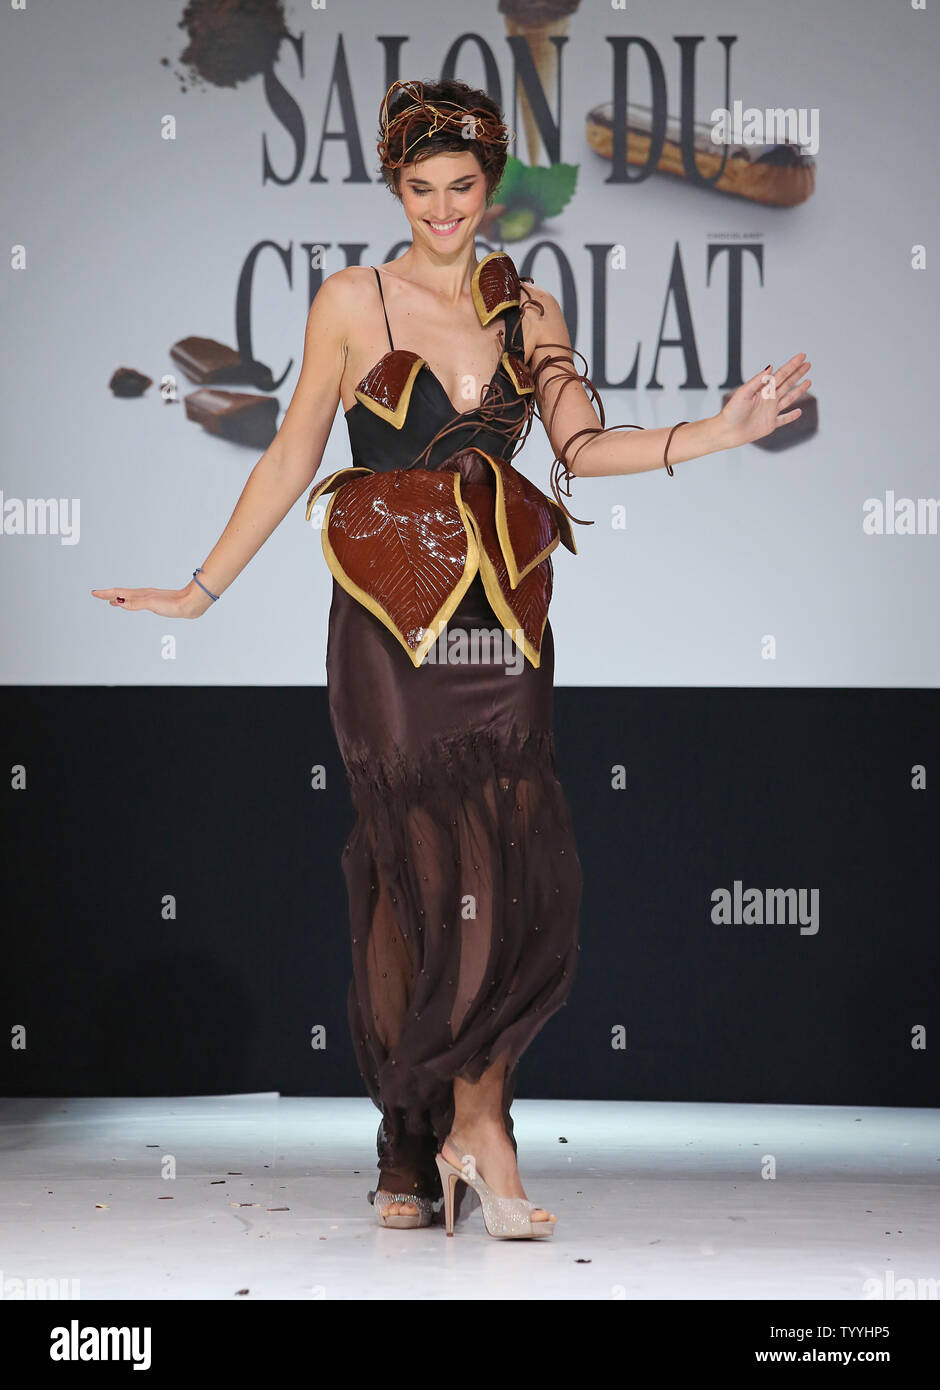 Eglantine Emeye Wears A Creation Made With Chocolate During A Fashion Show At The Inauguration Of The 19th Annual Salon Du Chocolat In Paris On October 29 2013 The Show The World S